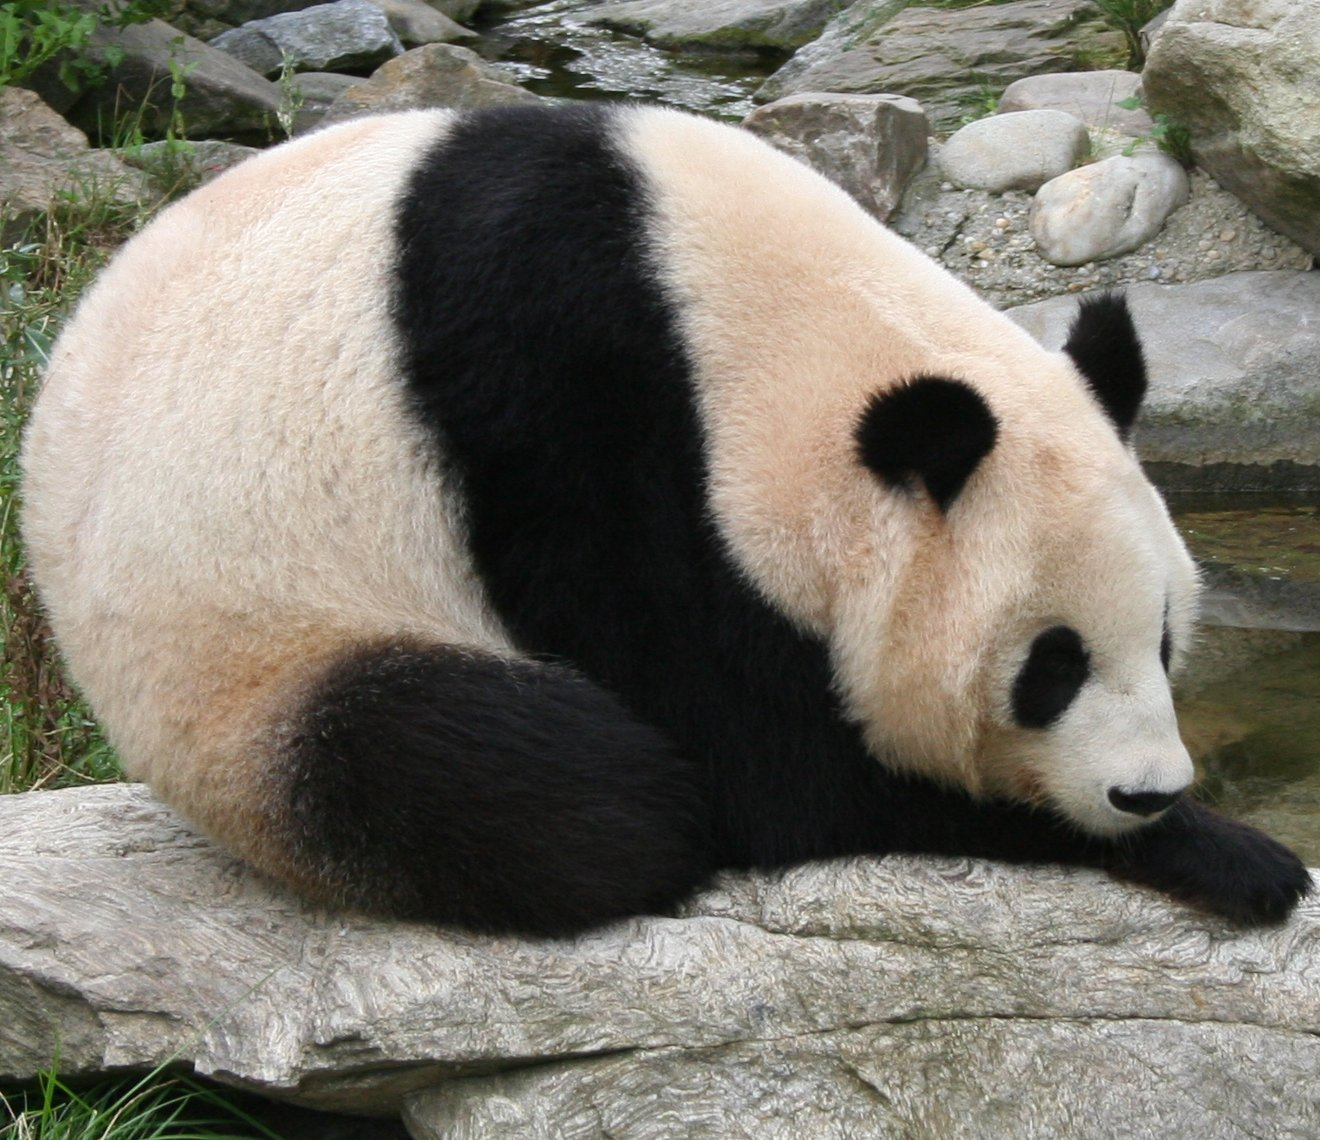 https://i0.wp.com/upload.wikimedia.org/wikipedia/commons/1/19/Giant_panda_at_Vienna_Zoo_%28cropped%29.jpg